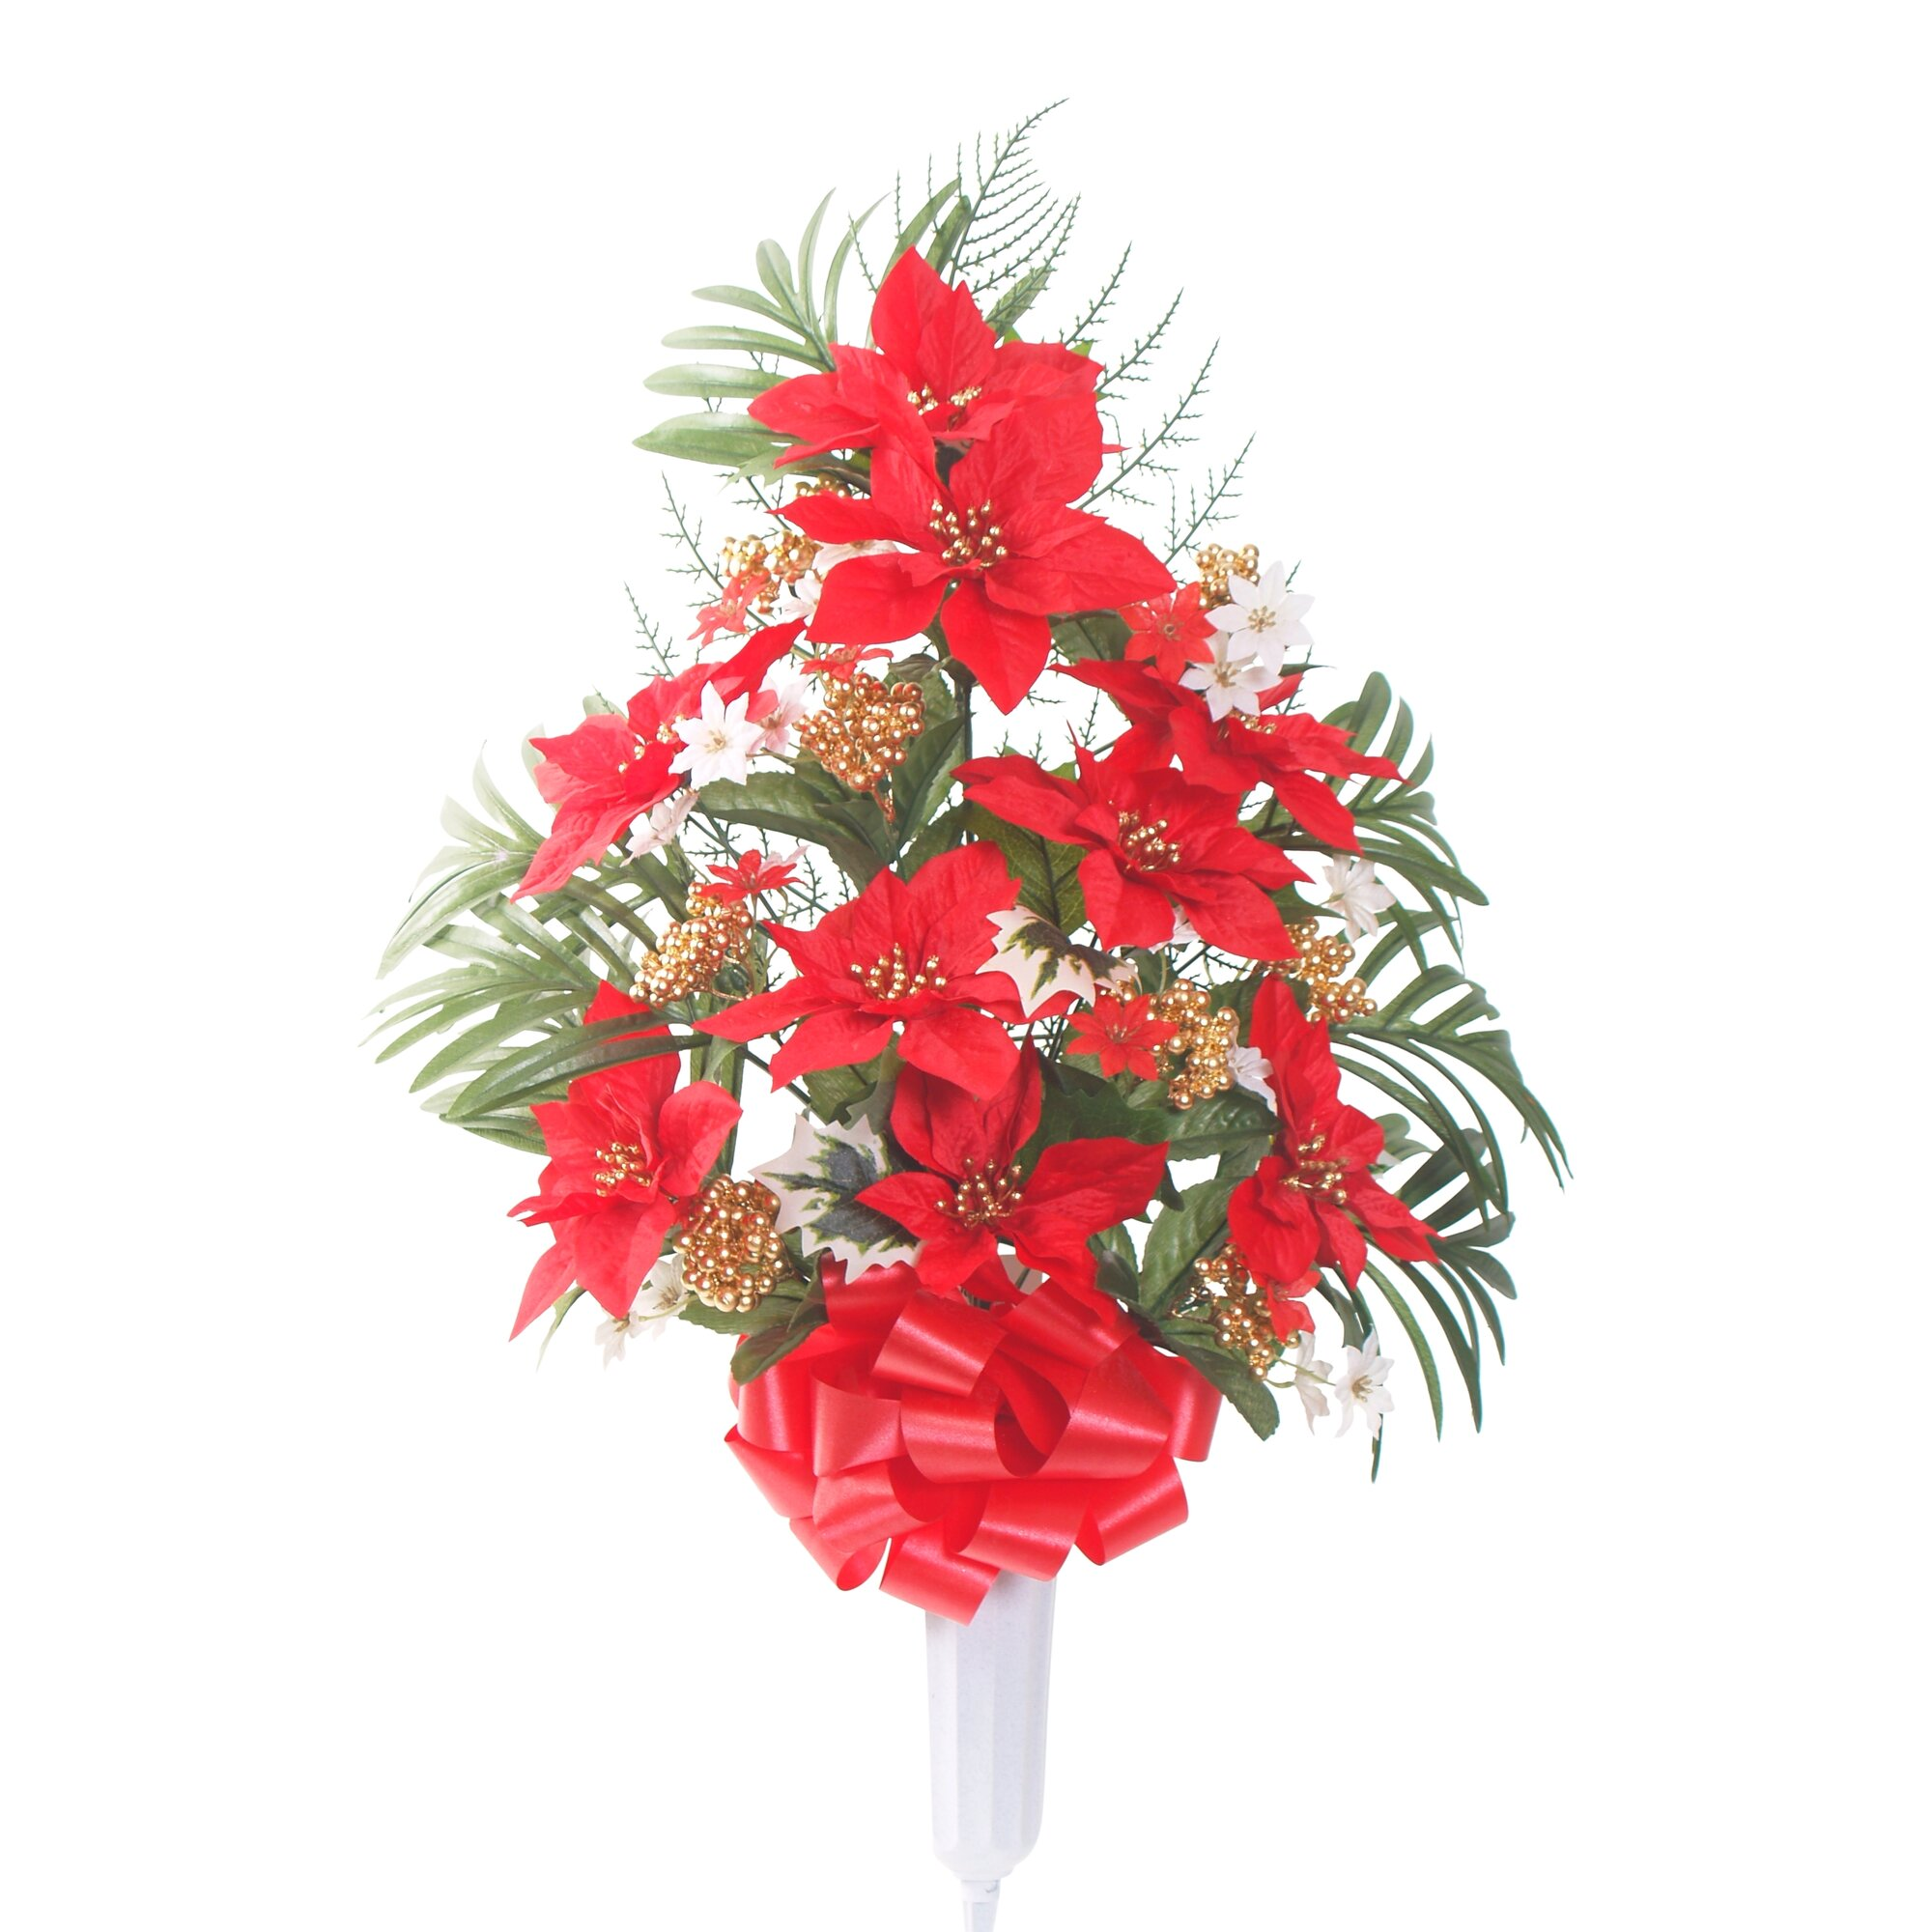 Teters memorial signature poinsettia floral vase for Poinsettia arrangements